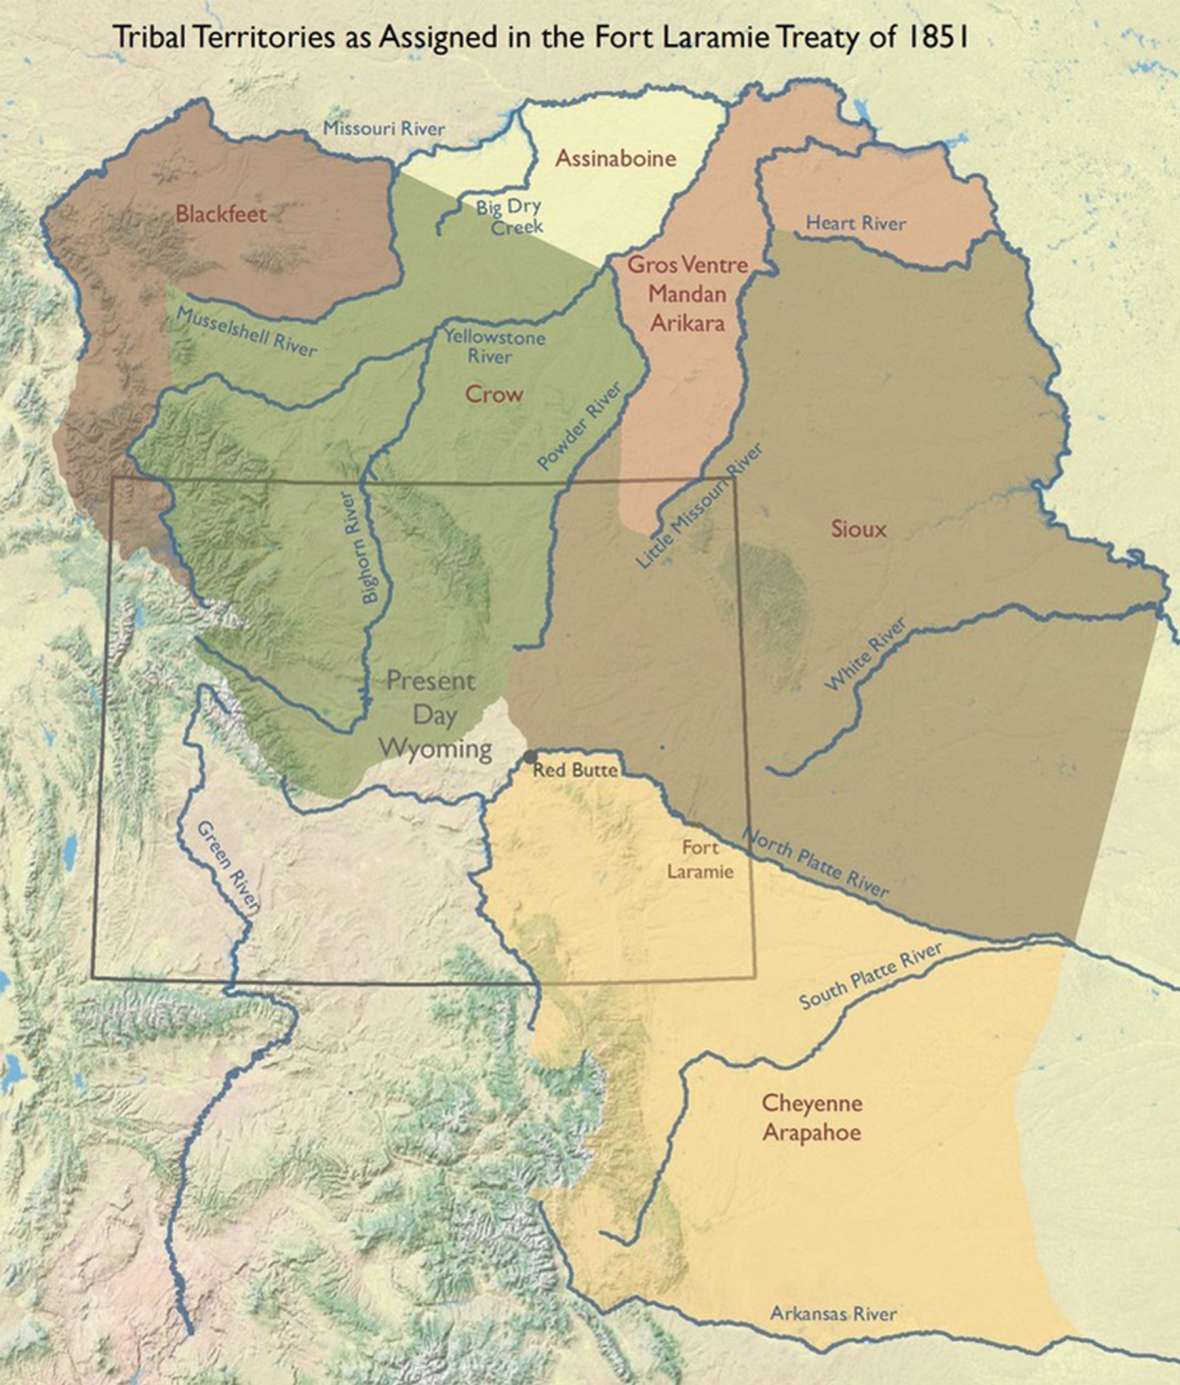 The 1851 Fort Laramie Treaty was the first to assign separate lands to the tribes of the Northern Plains. Map by WyGISC, University of Wyoming.